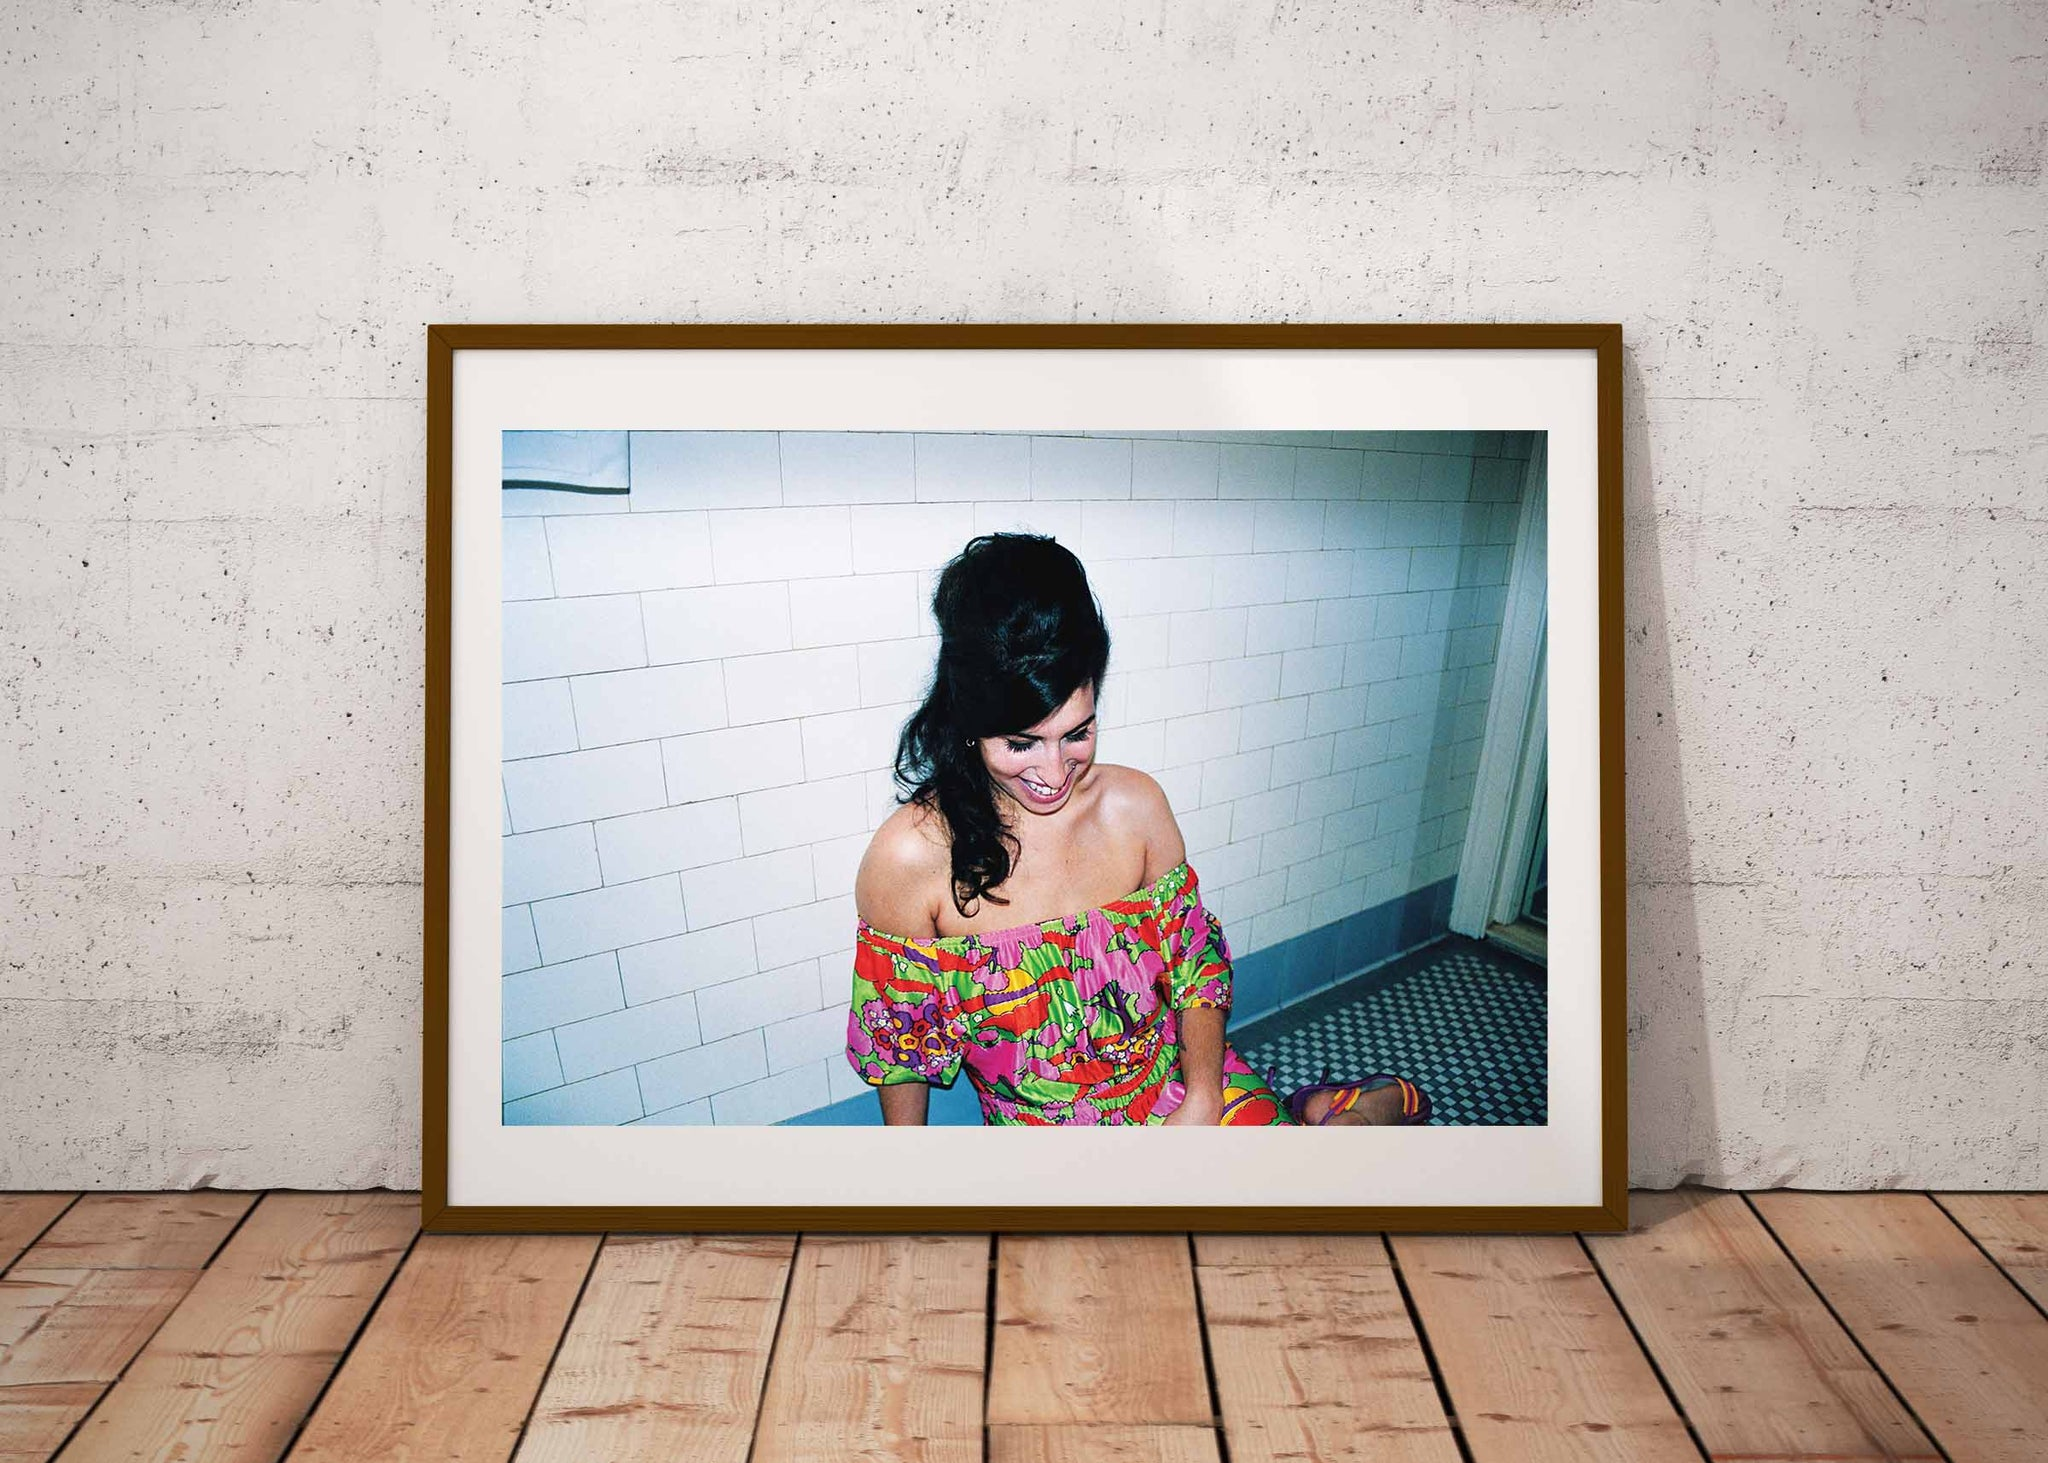 """On the Floor at The Ritz NYC""- Amy Winehouse 16x 20 C41 photographic archival print"